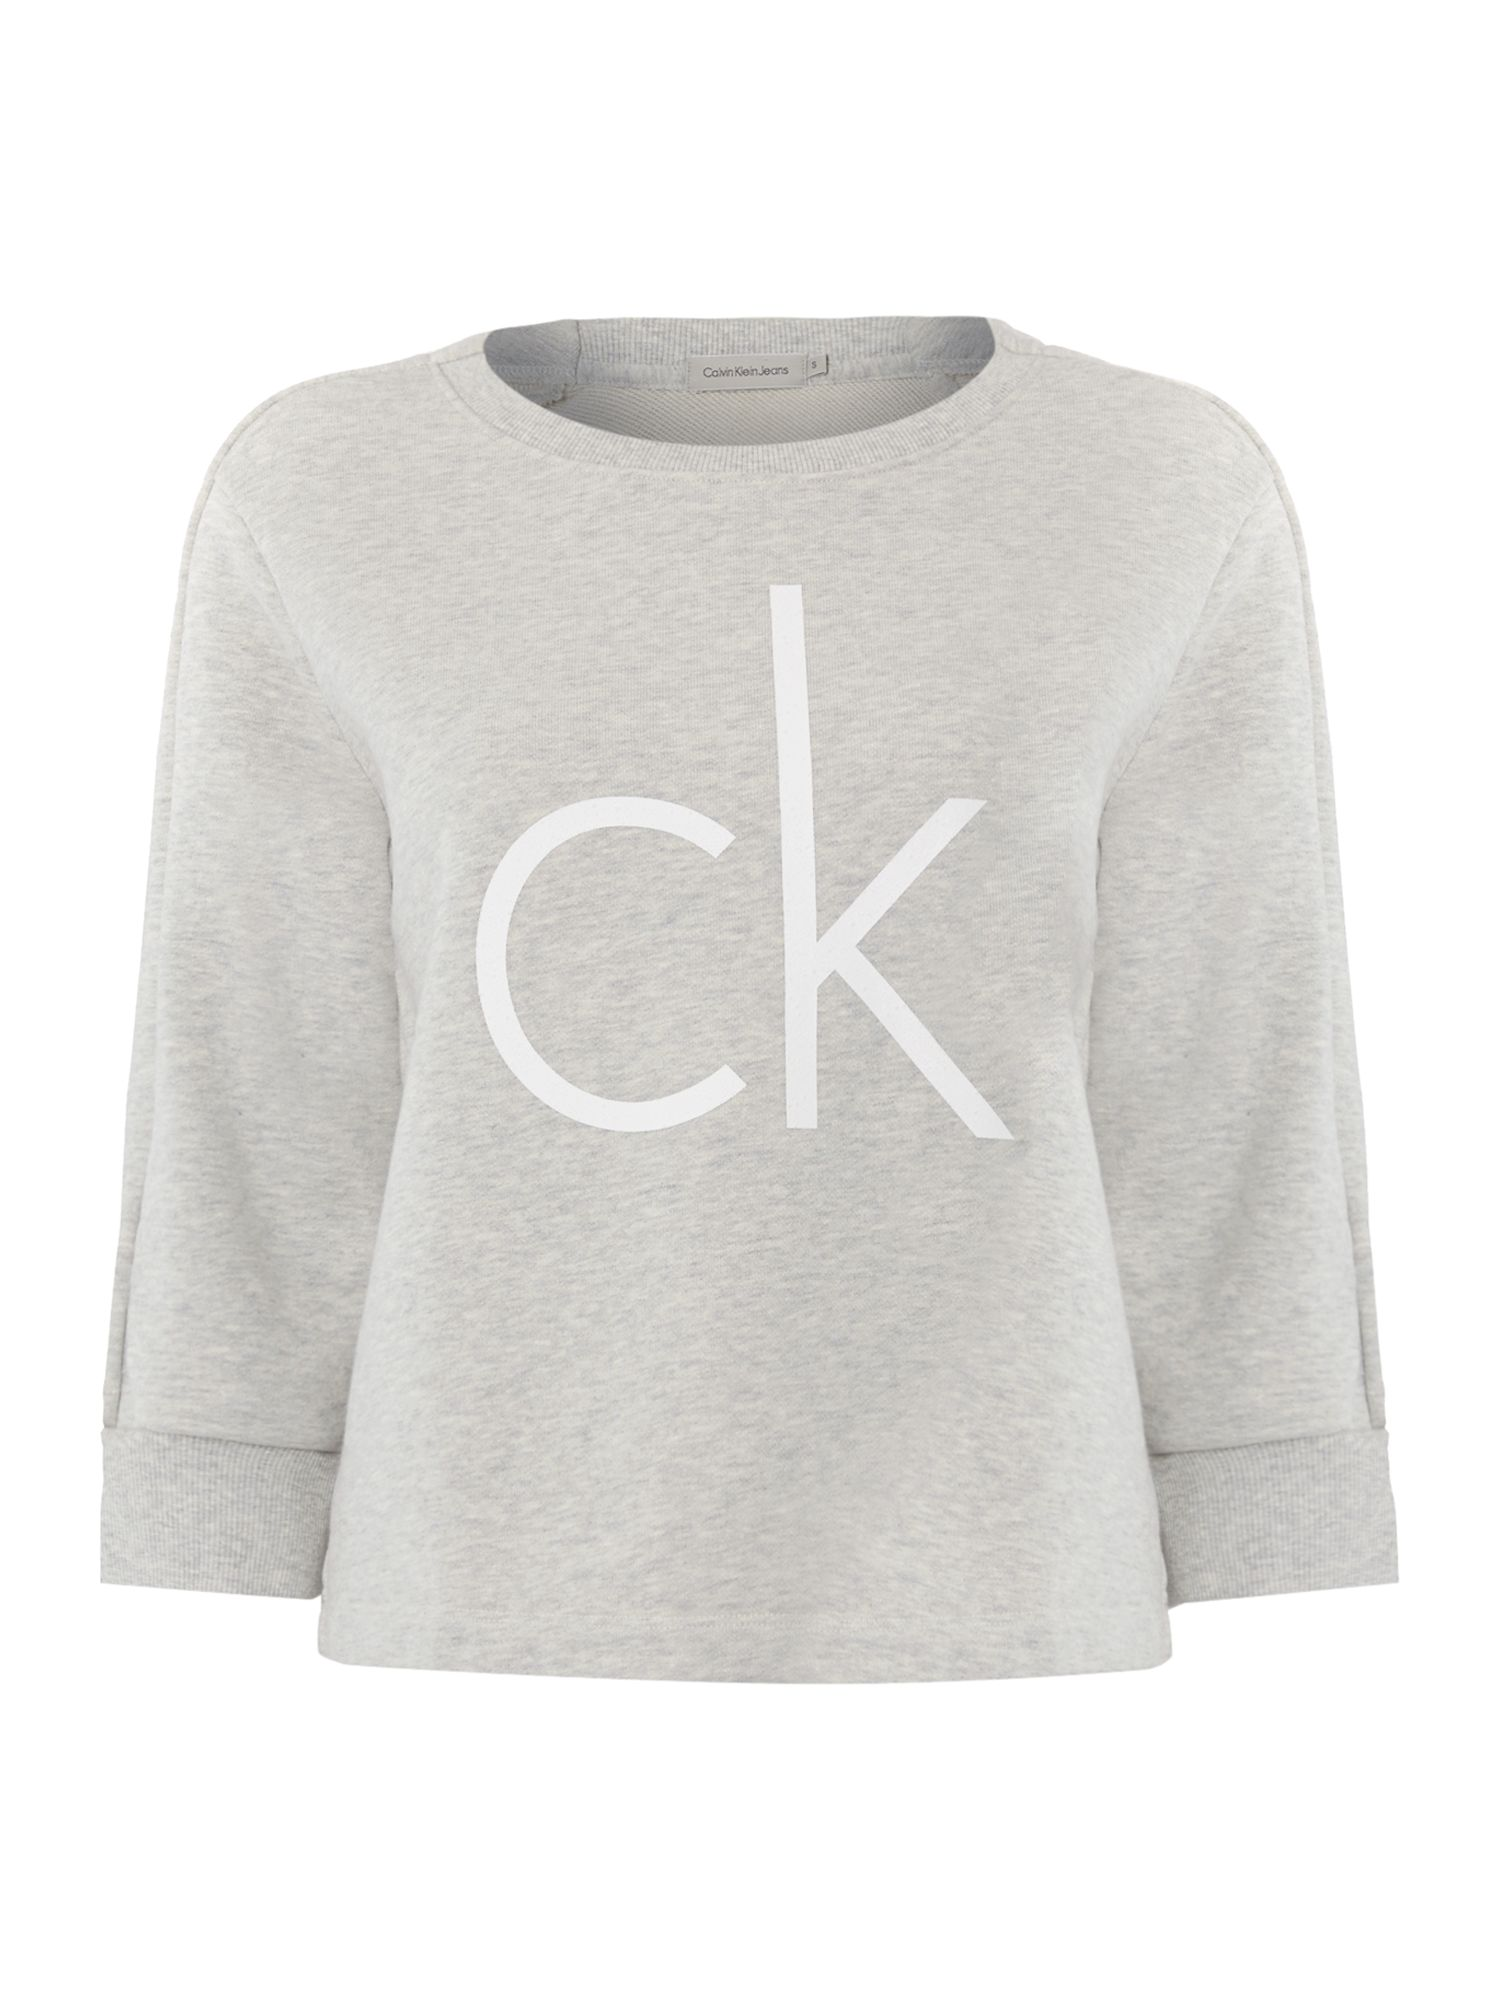 Henna 3/4 sleeve CK logo top